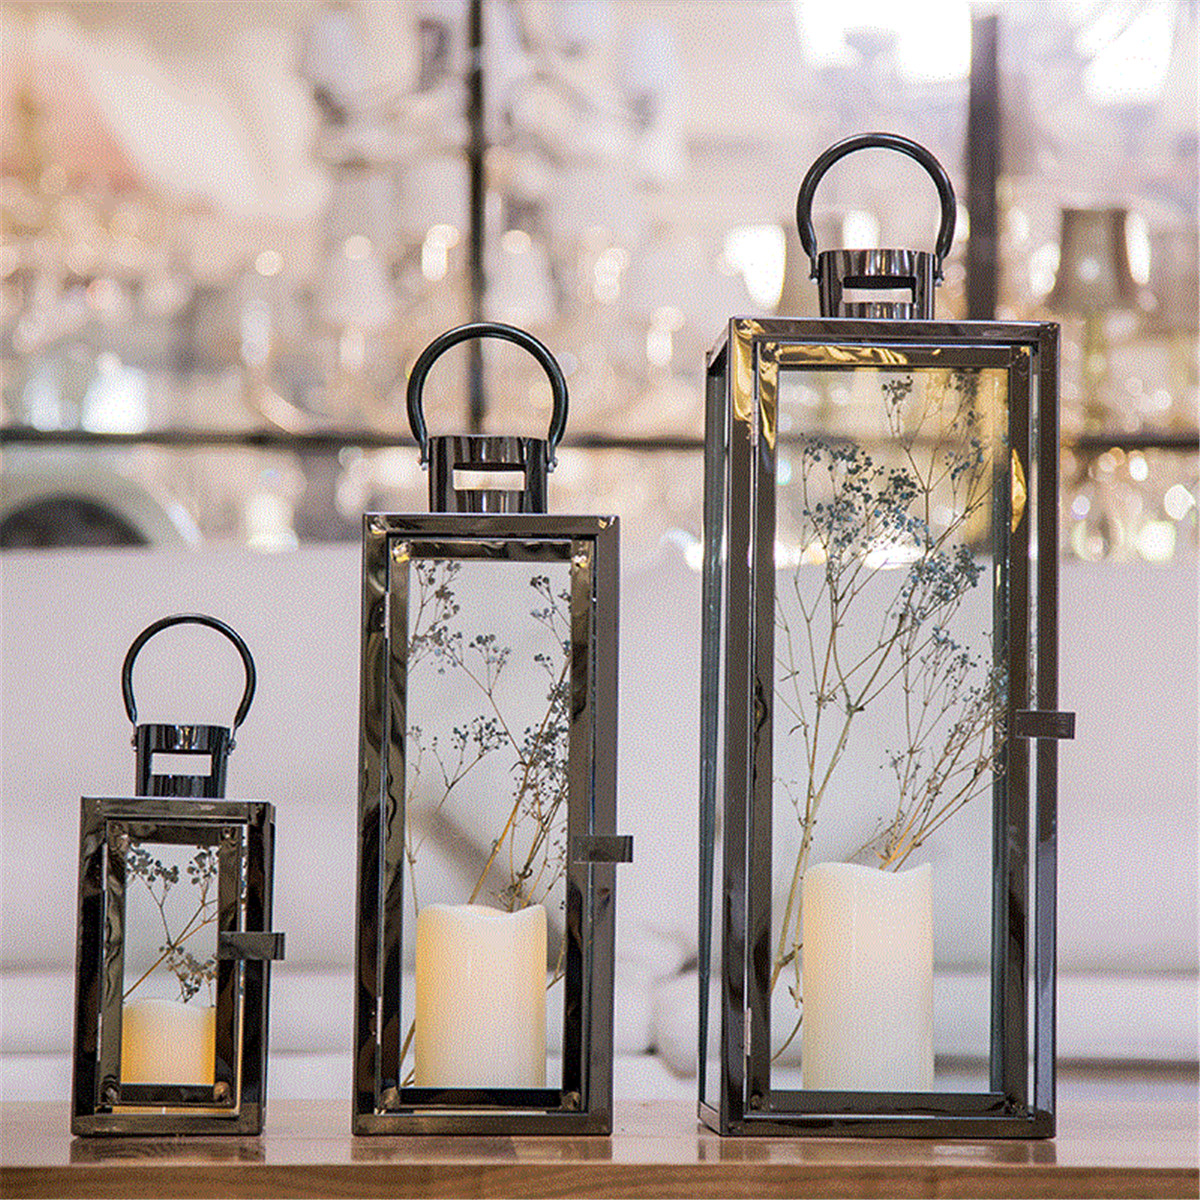 3pcs set glass lantern candle holder garden night wedding tea light home decor ebay. Black Bedroom Furniture Sets. Home Design Ideas